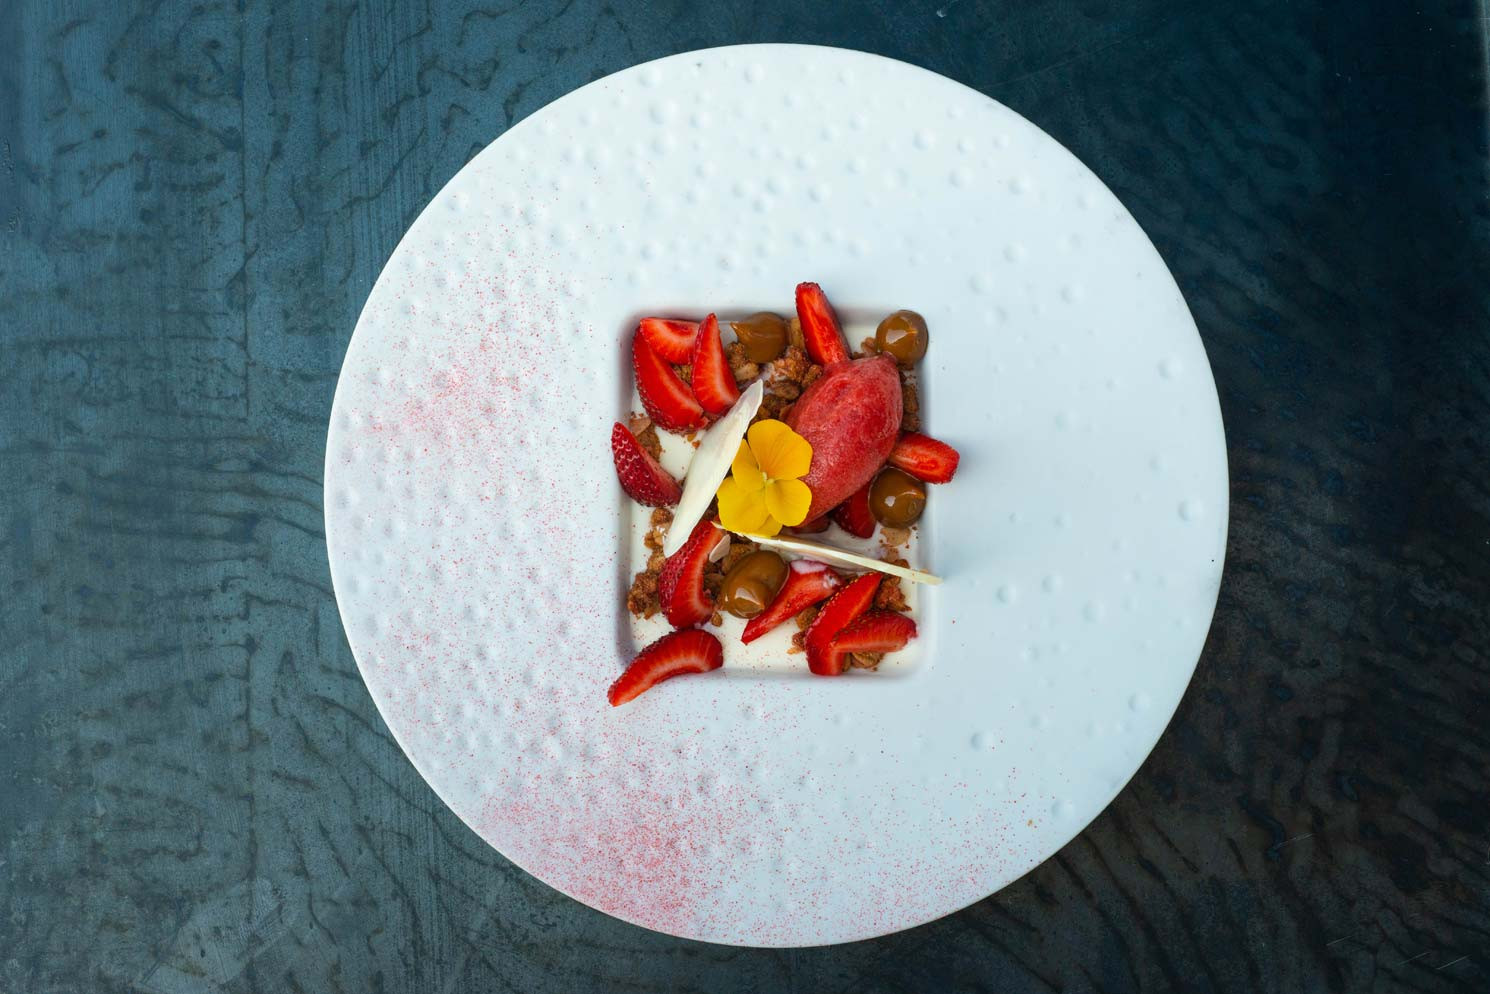 Panna Cotta with Strawberry Sorbet and White Chocolate Ravioli by Kamel Guechida